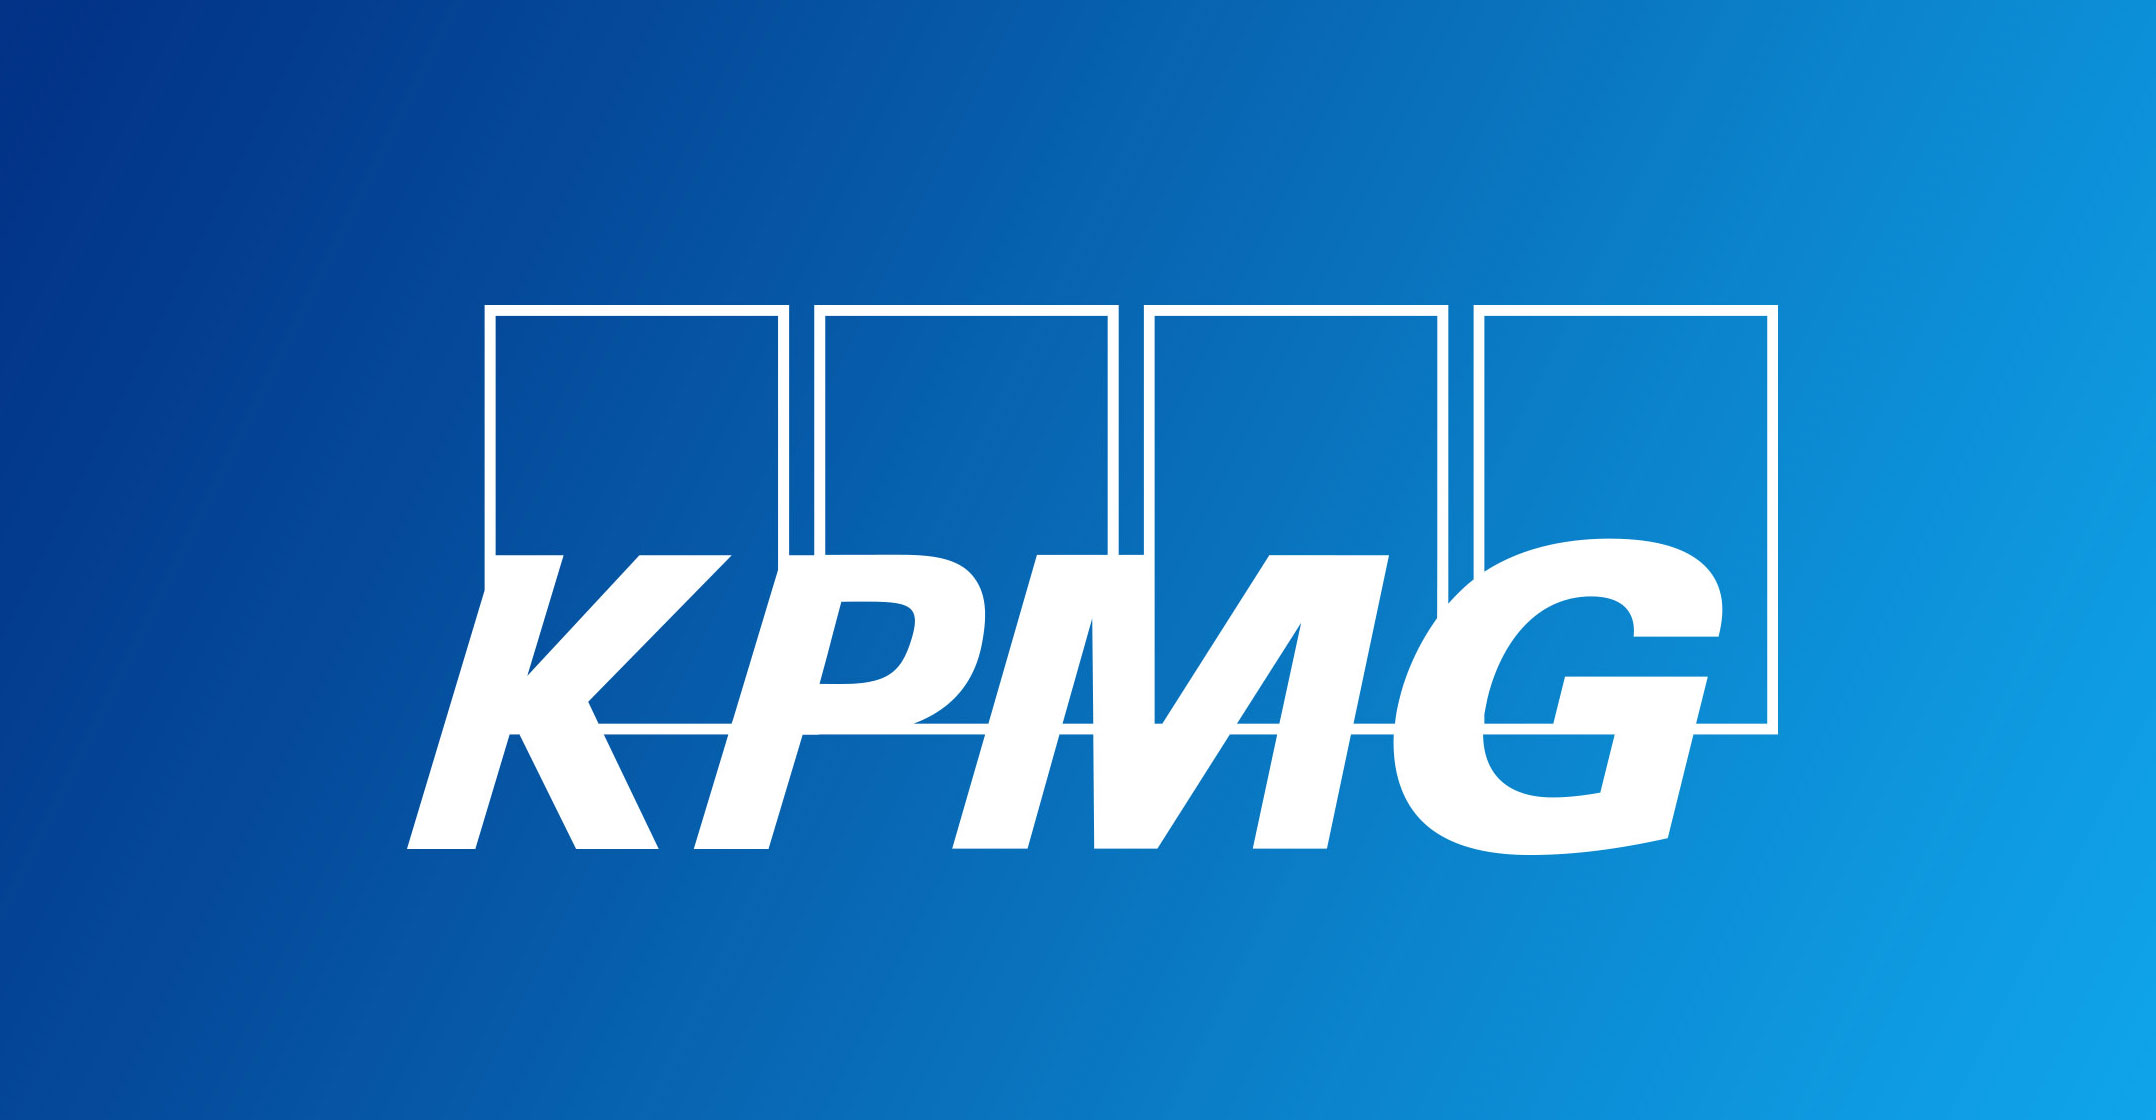 Gupta wedding audit ethical, says KPMG boss